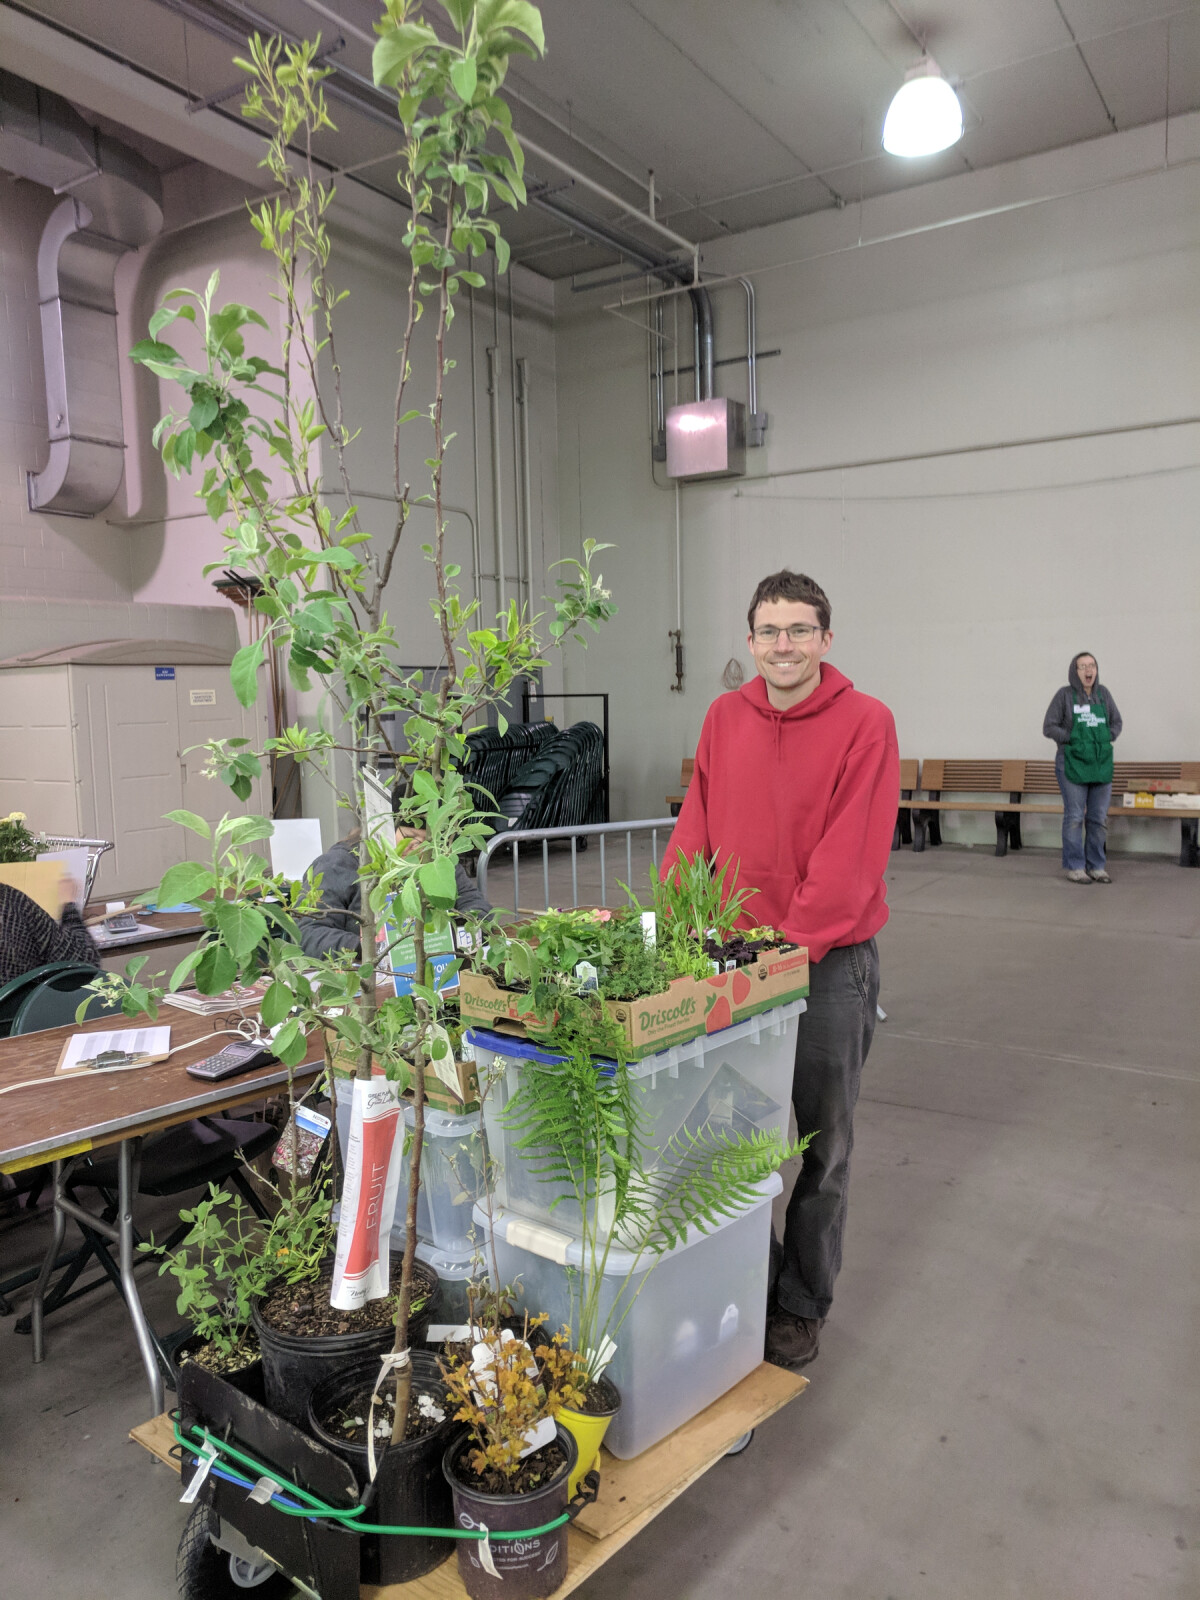 Ian with a cart overloaded with plants